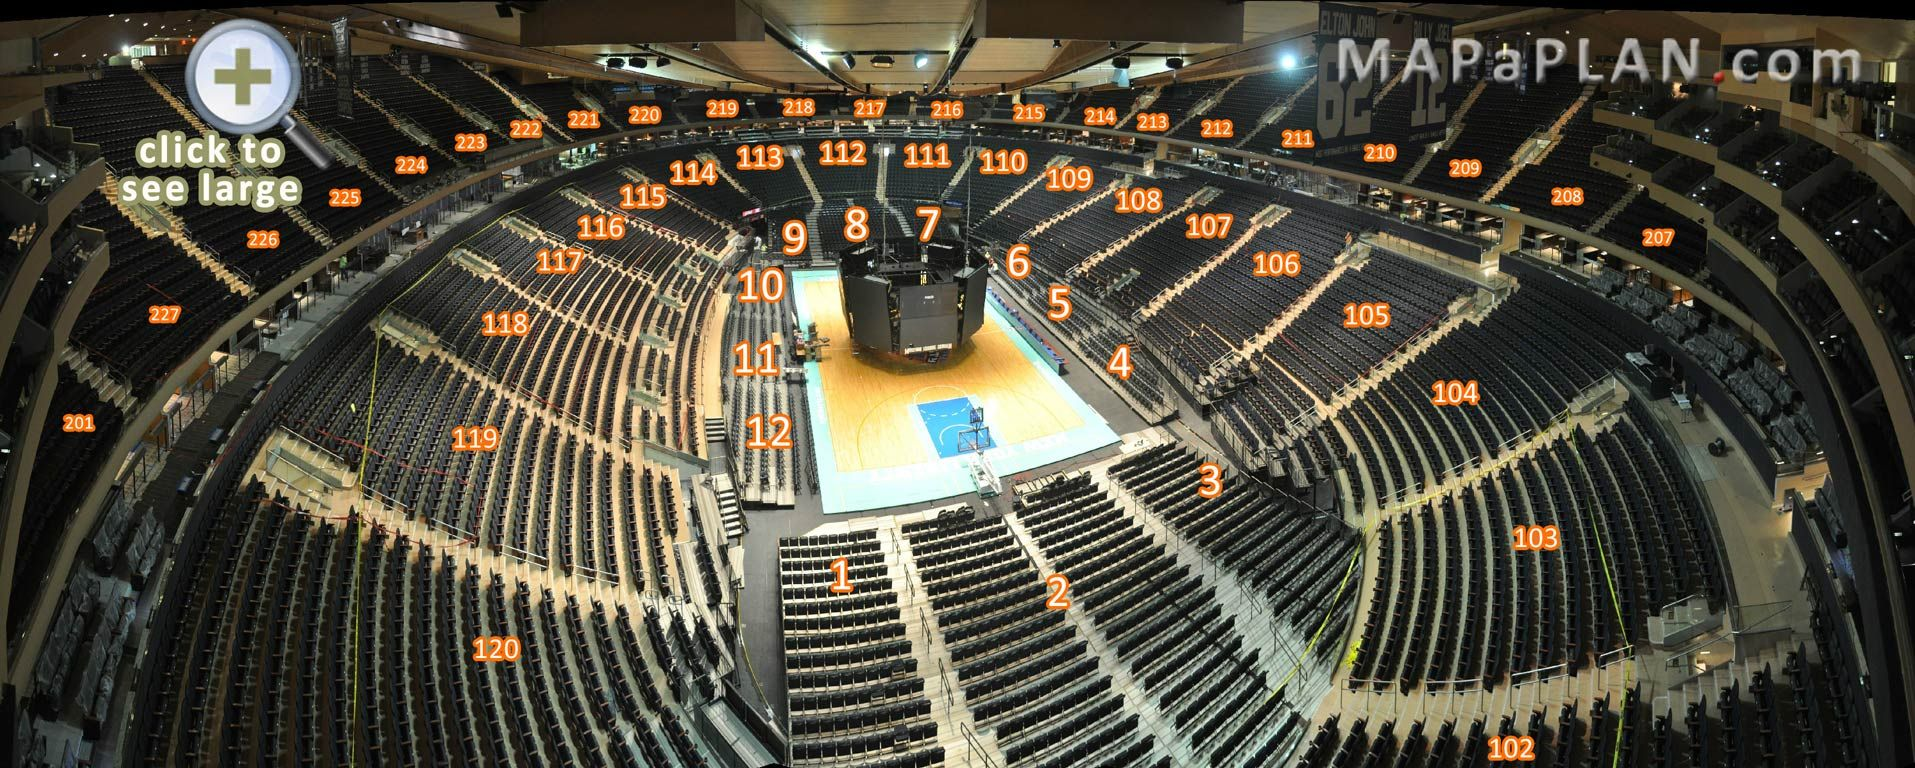 Madison square garden seating chart interactive basketball 3d panoramic photo concert seating Madison square garden basketball